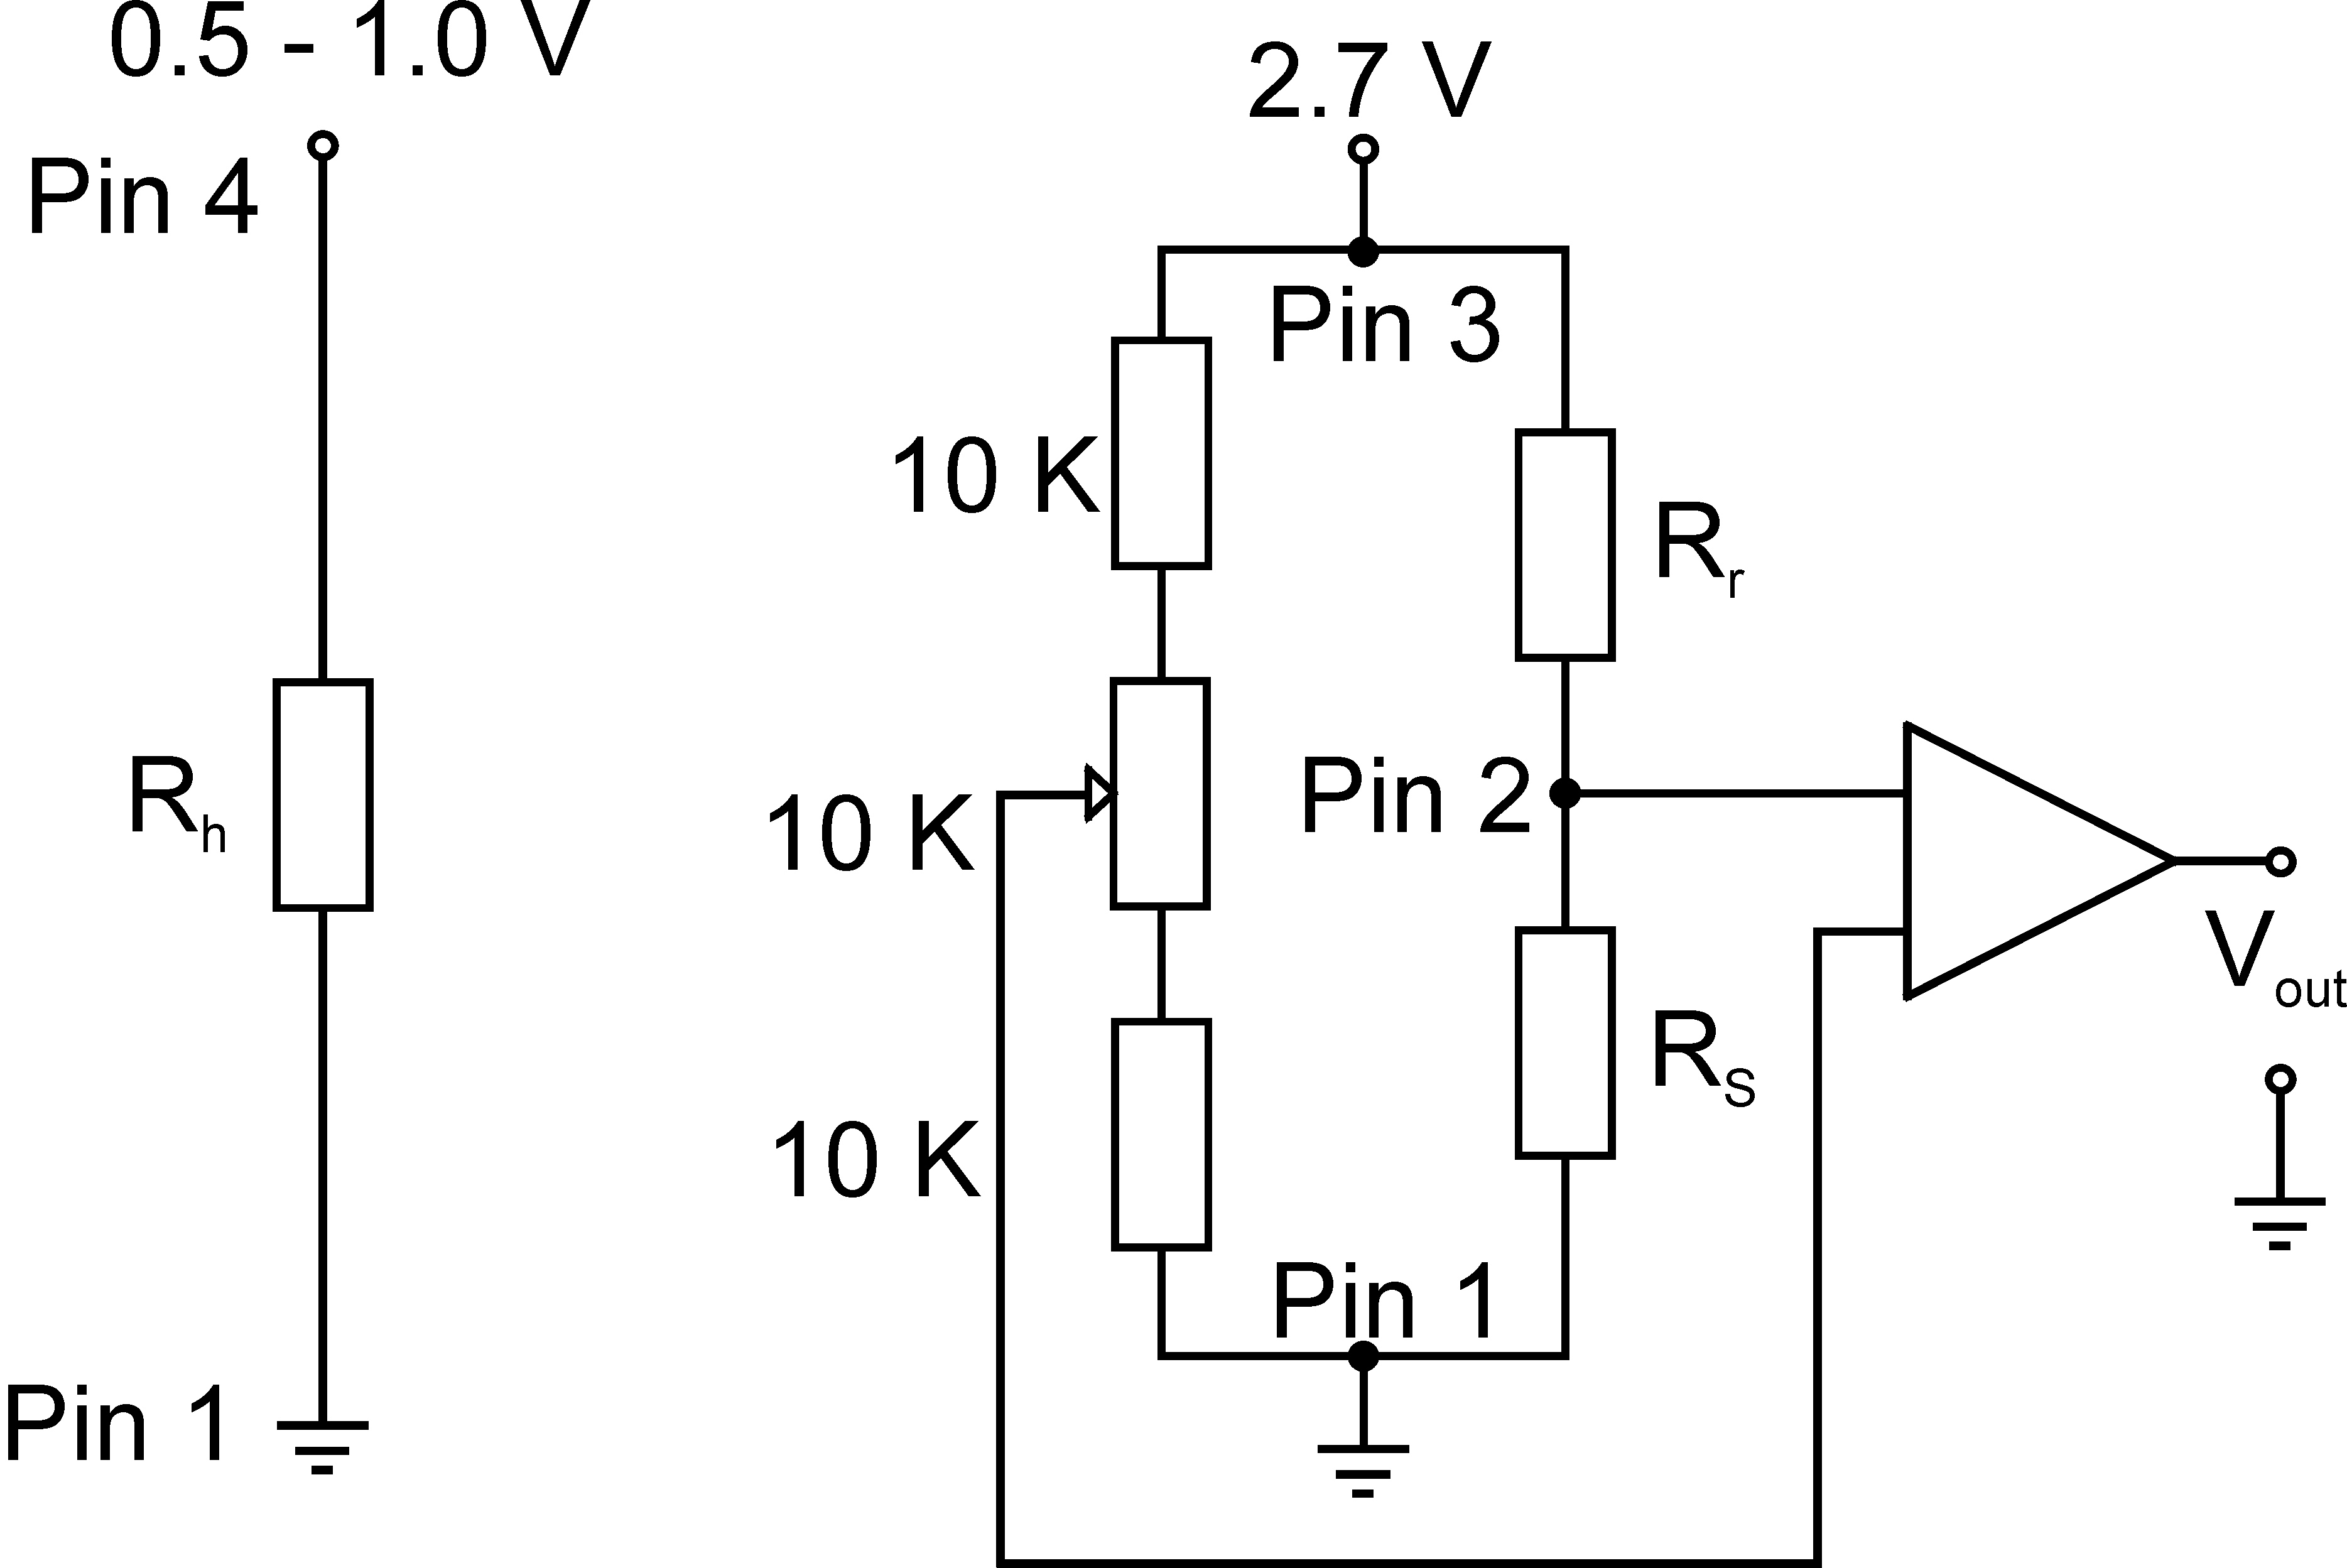 Preparation And Use Of Photocatalytically Active Segmented Ag Zno Split Circuit Wiring Moreover A Line Load Gfci Outlet Diagram Typical Operating The H2 Sensor With Wheatstone Bridge In This Scheme Pin 1 To 4 Refer Is Black